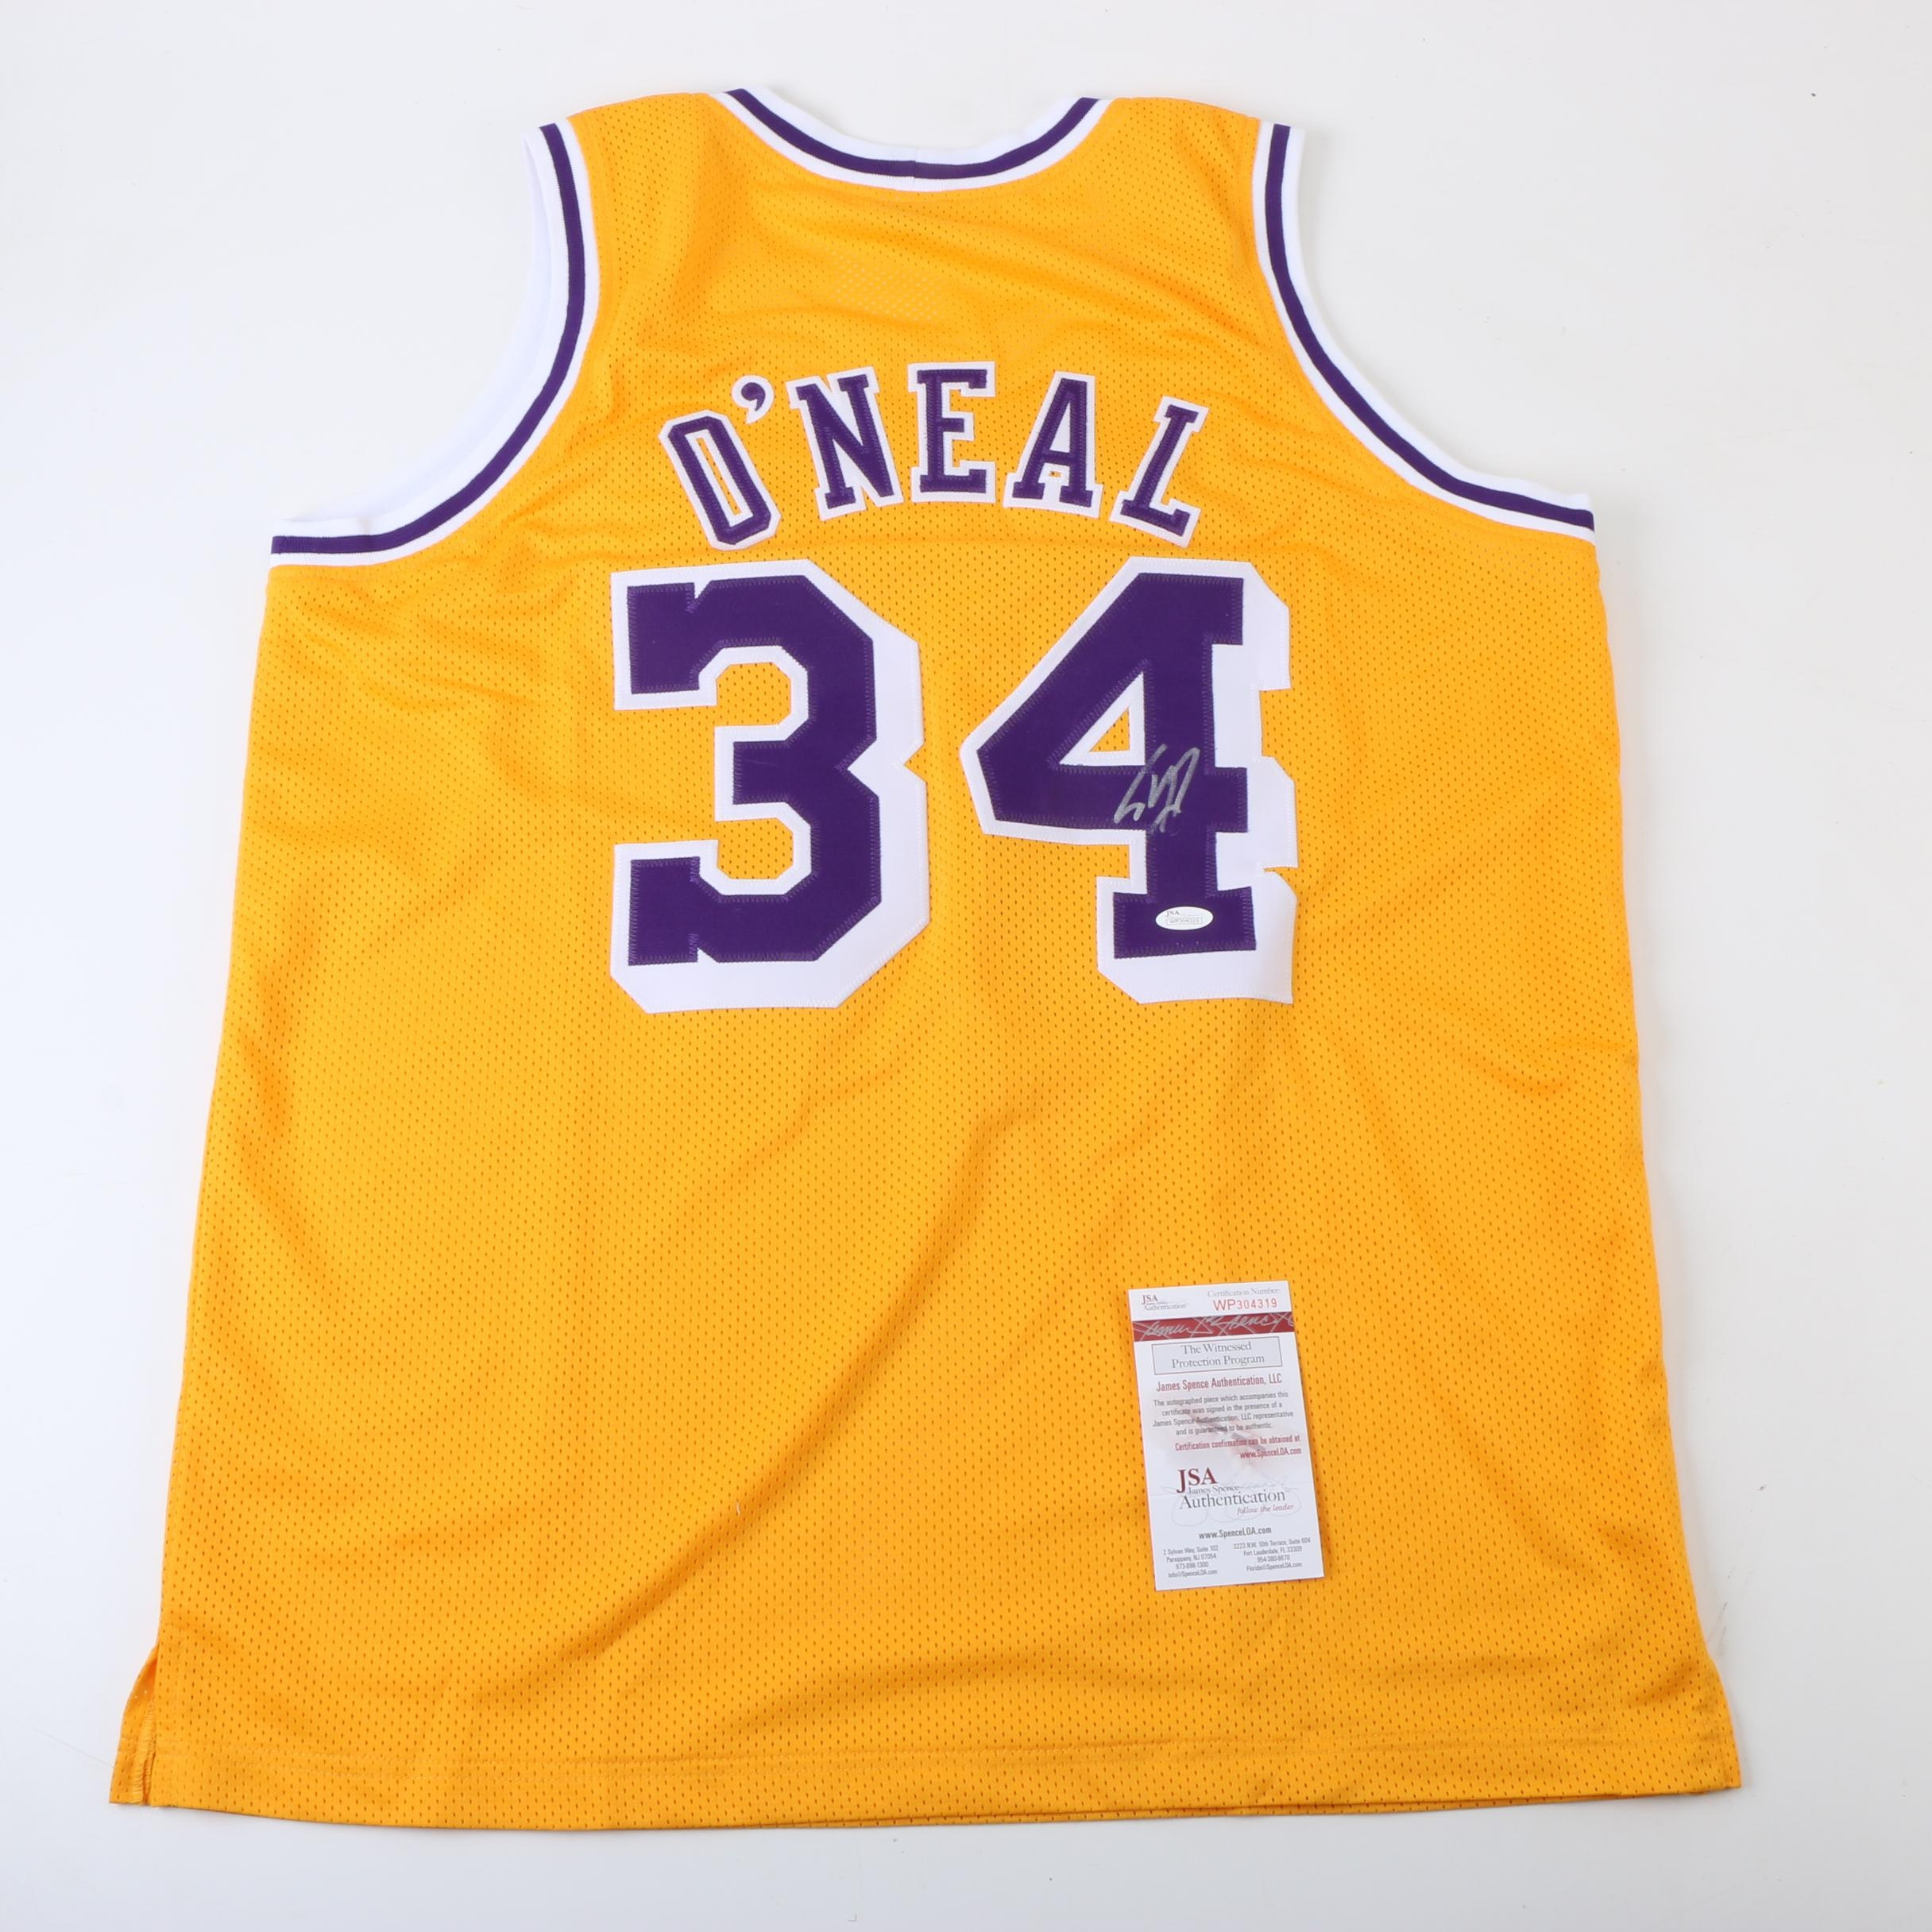 Shaquille O'Neal Autographed Los Angeles Lakers Jersey - JSA COA